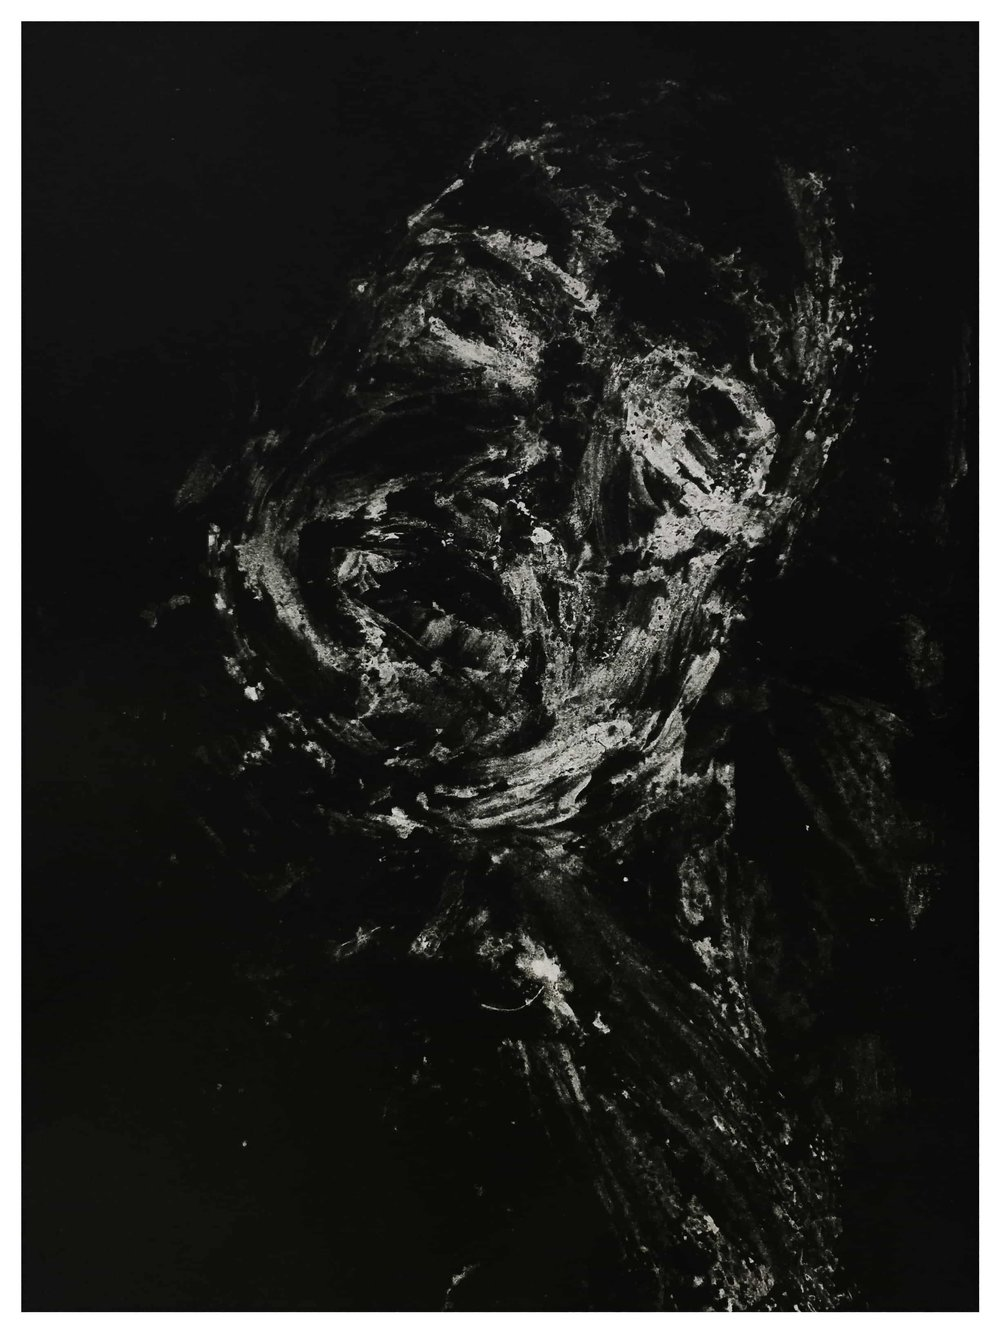 """Dissolved No. 3 ,   2015   Monotype print on copy paper  9""""x11"""" (Framed) 8.5""""x11""""(Image)  Inquire below"""